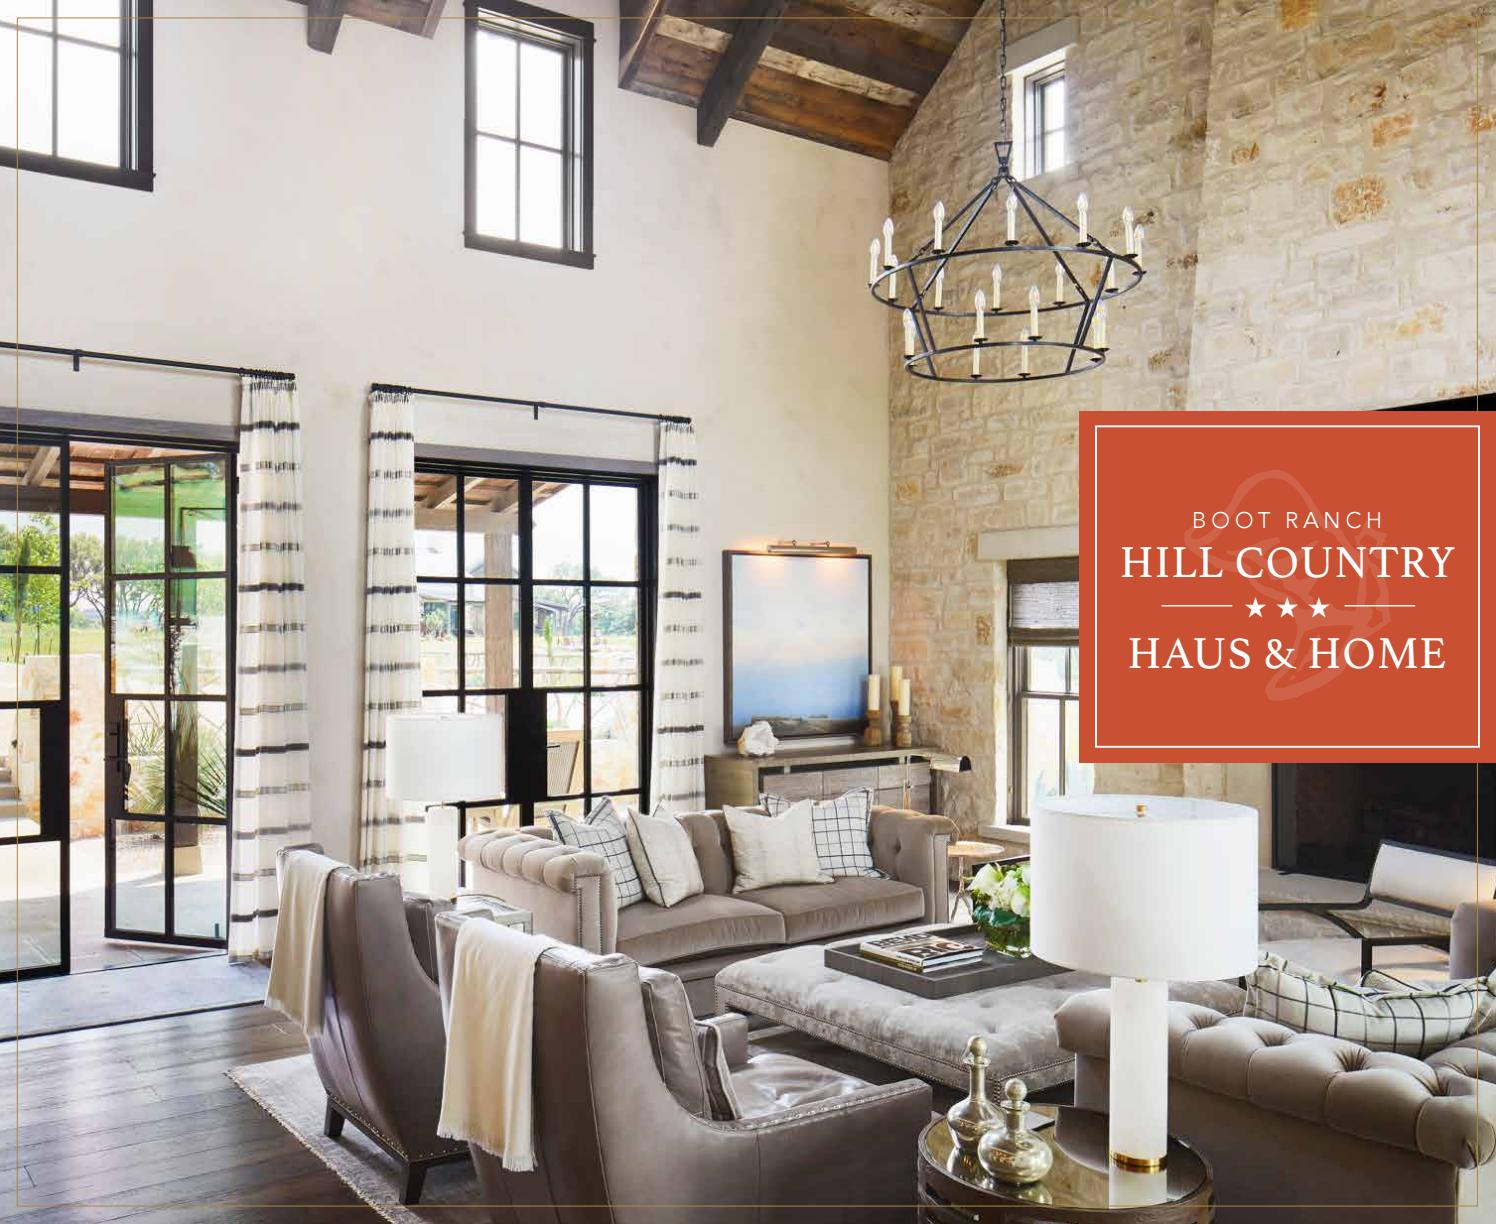 Hill Country Haus & Home by Boot Ranch - Issuu on Hhh Outdoor Living  id=32059